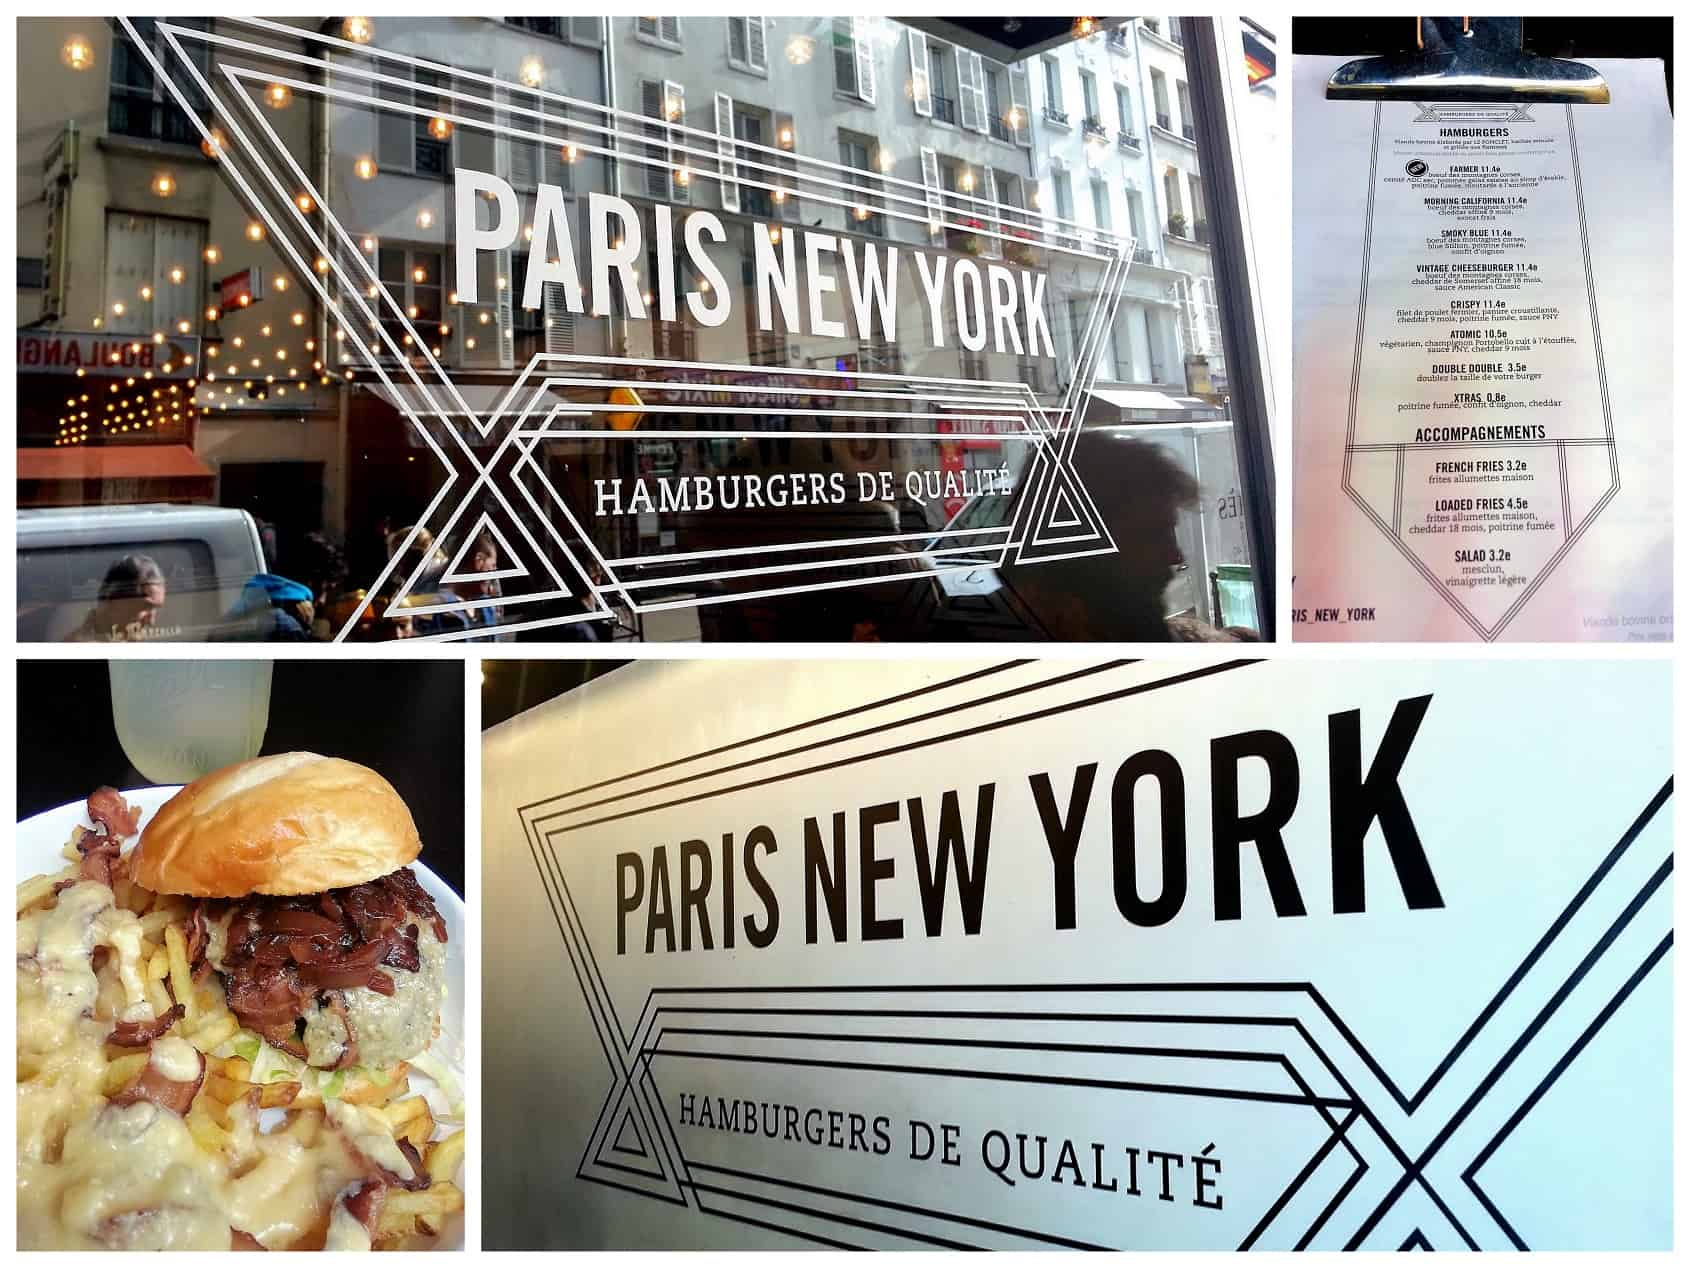 used-2013-10-19-pny-paris-new-york-hamburger-paris-paul-prescott